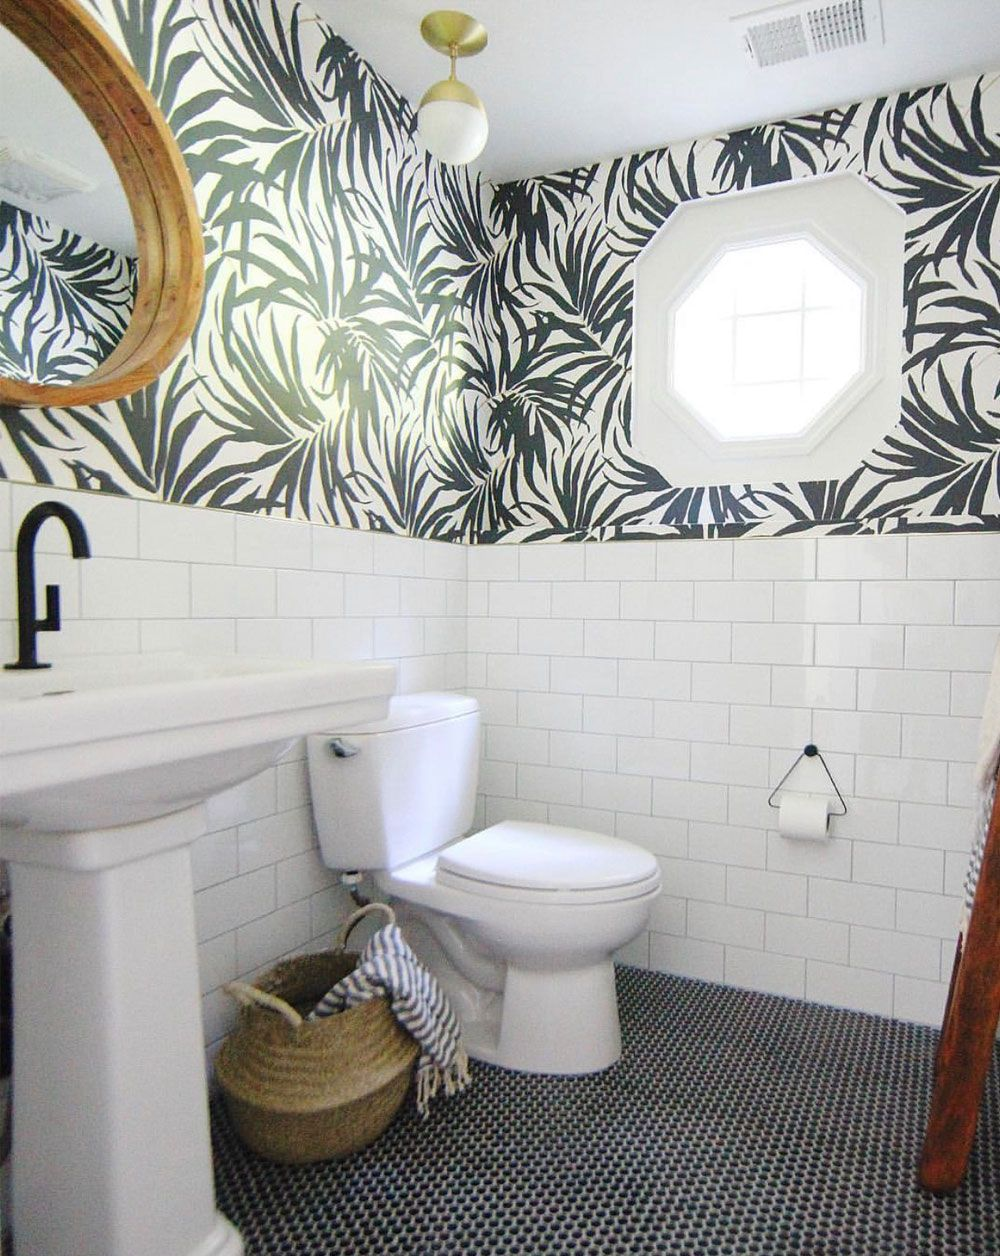 Best Removable Wallpaper Temporary Wallpaper Bathroom Wallpaper Bathroom Wallpaper Trends Bathroom Styling